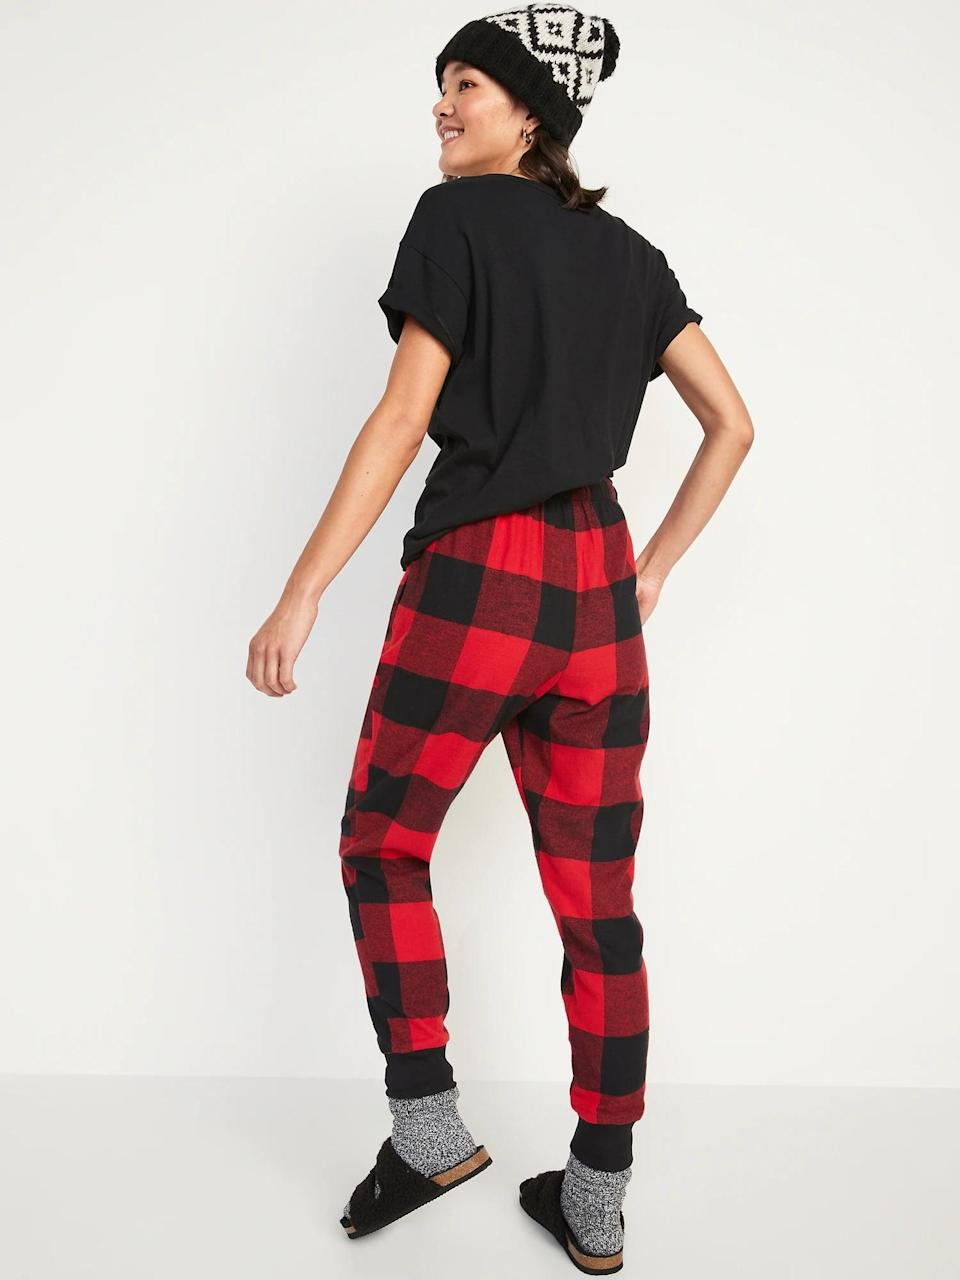 <p>It's not too early to nab a pair of these <span>Old Navy Matching Printed Flannel Jogger Pajama Pants</span> ($20) to wear all winter long, especially since there are <span>options for the entire family already in stock</span>, too.</p>